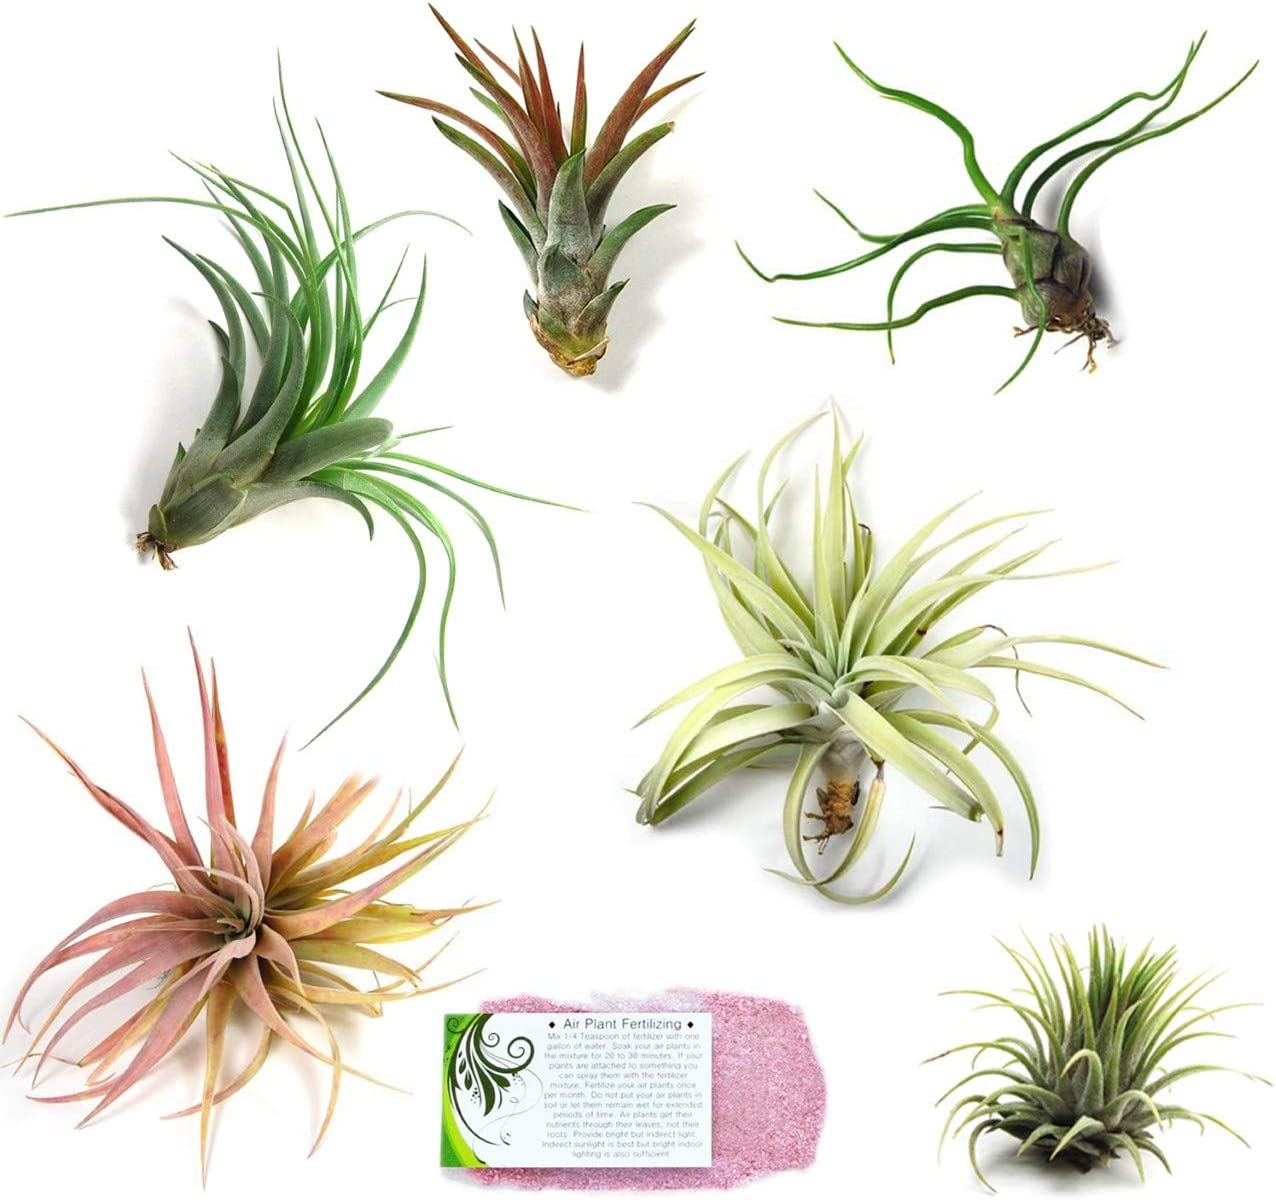 Air Plants for Sale 5 Pack of Ionantha Guatemala Air Plants Spectacular Blooms 30 Day Air Plant Guarantee FAST SHIPPING